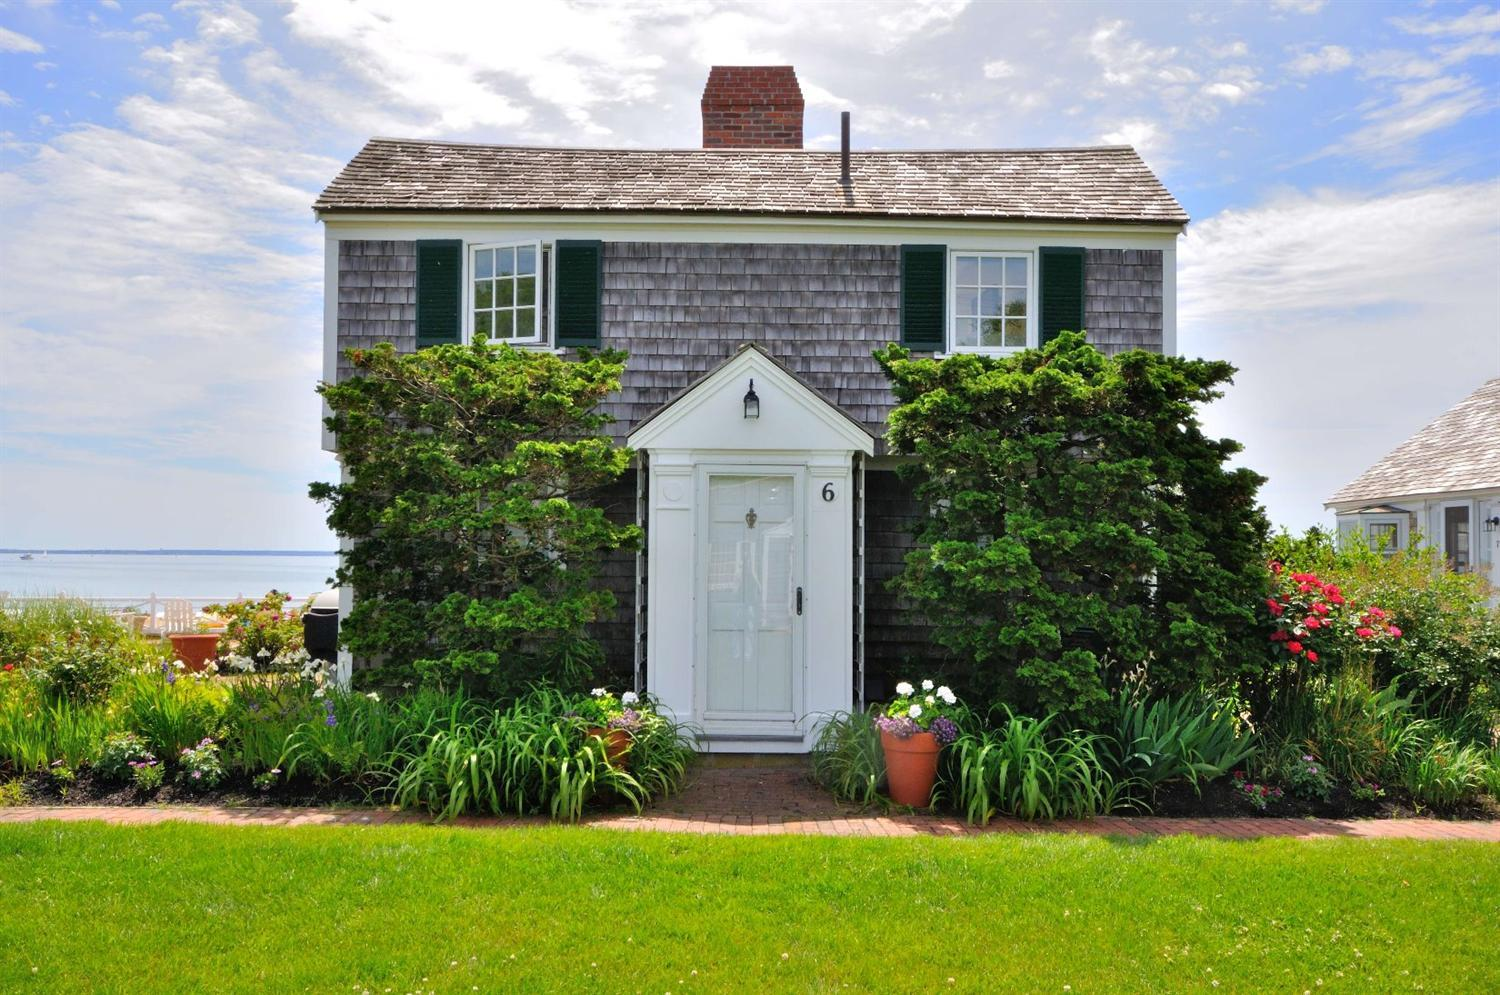 id is vacation a ma beaches to dennis provincetown m home cottages cod beach mayfair town cape rental walk min in